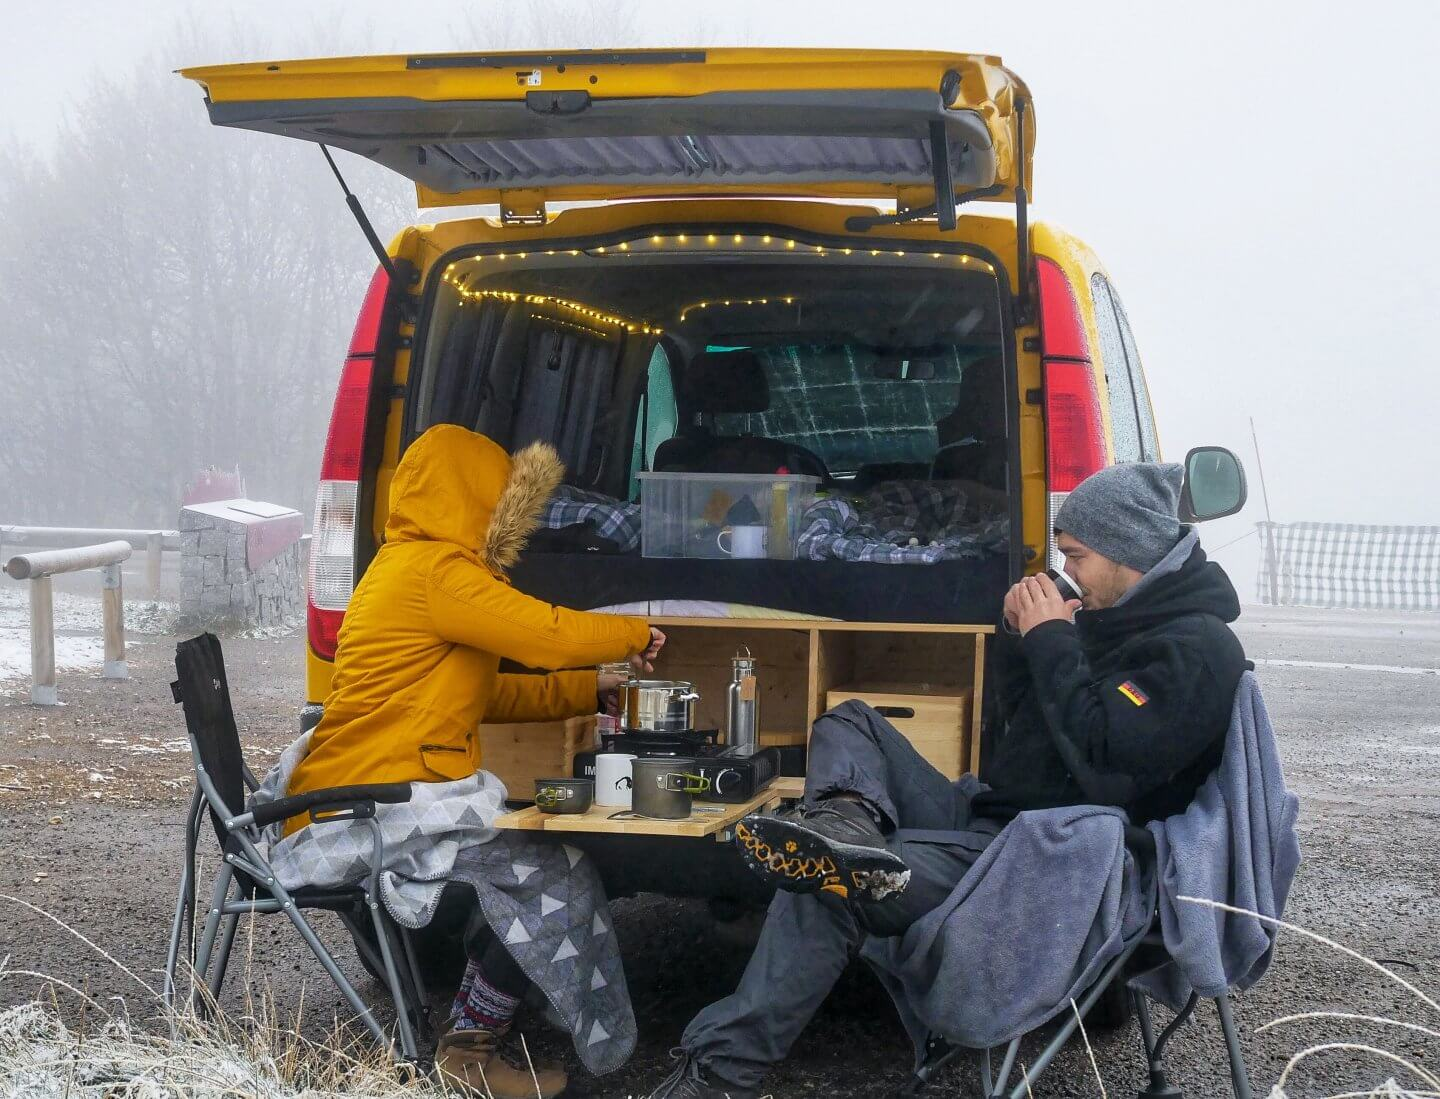 It's cold outside: 5 Tipps für Vanlife im Winter